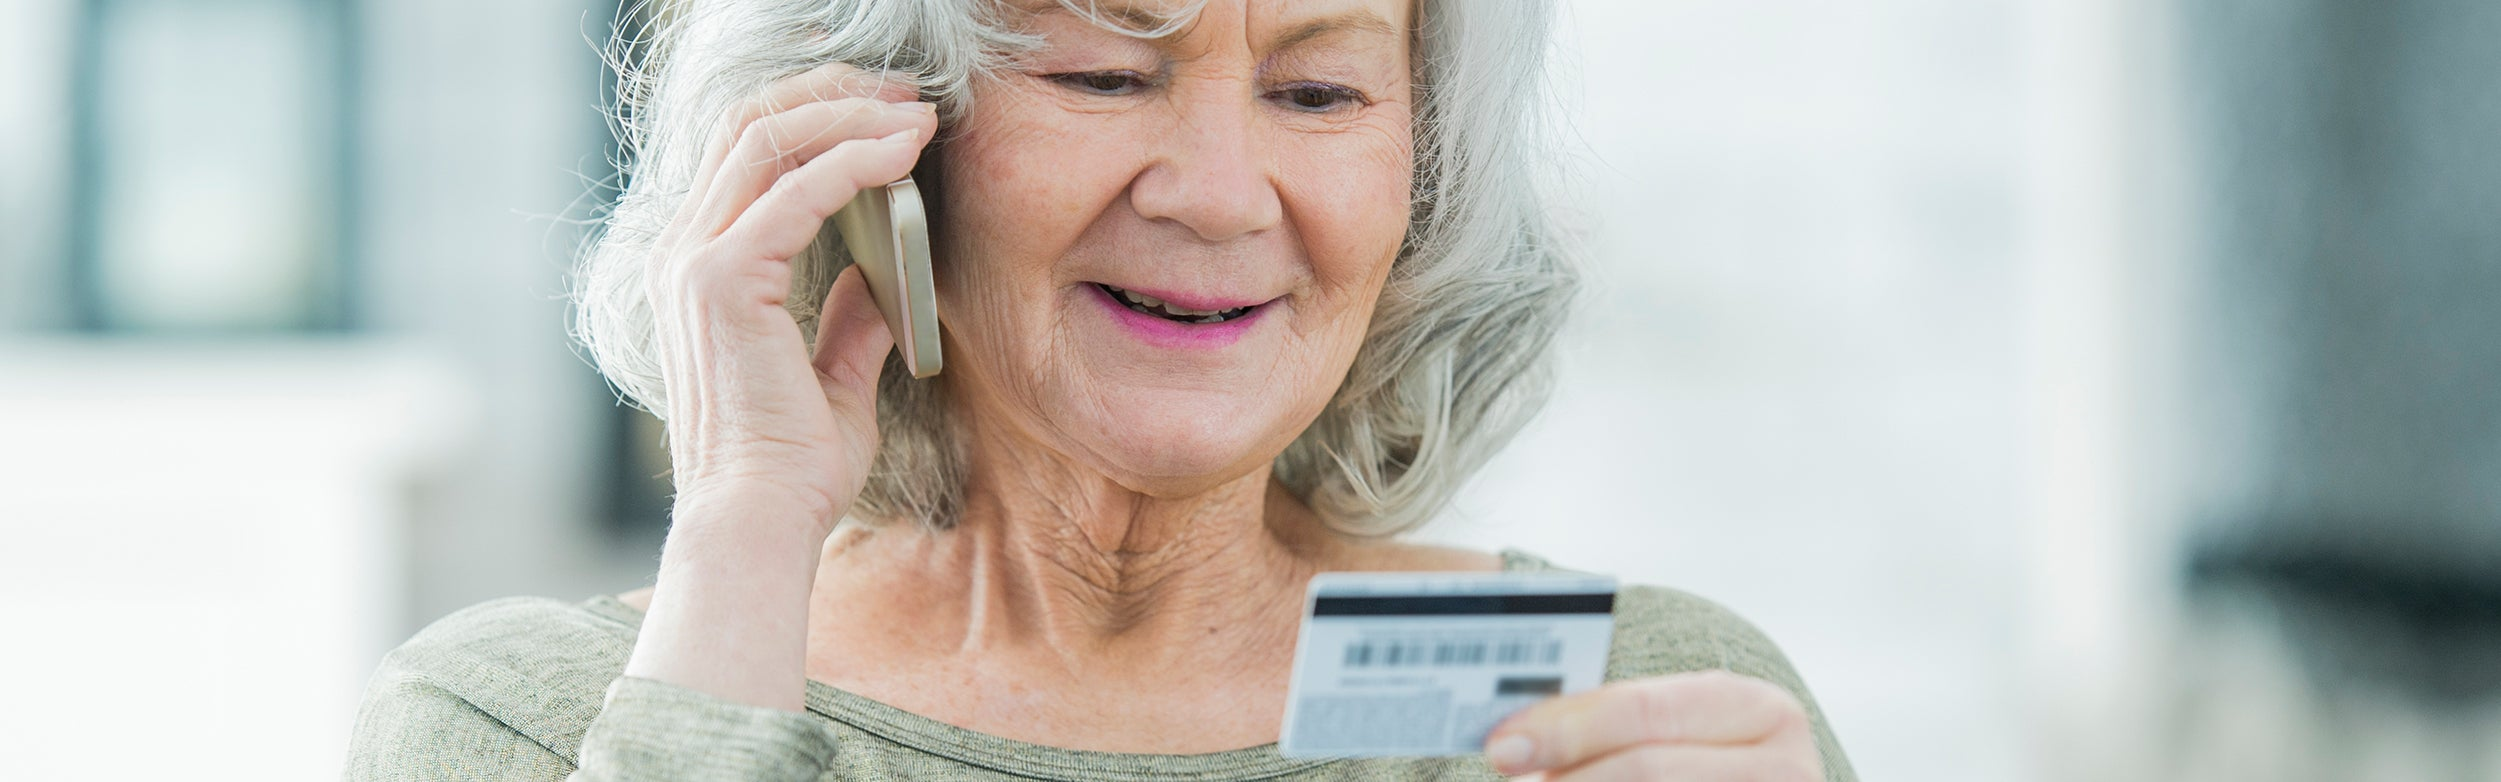 How to Protect Seniors From Scams, Fraud and Identity Theft image